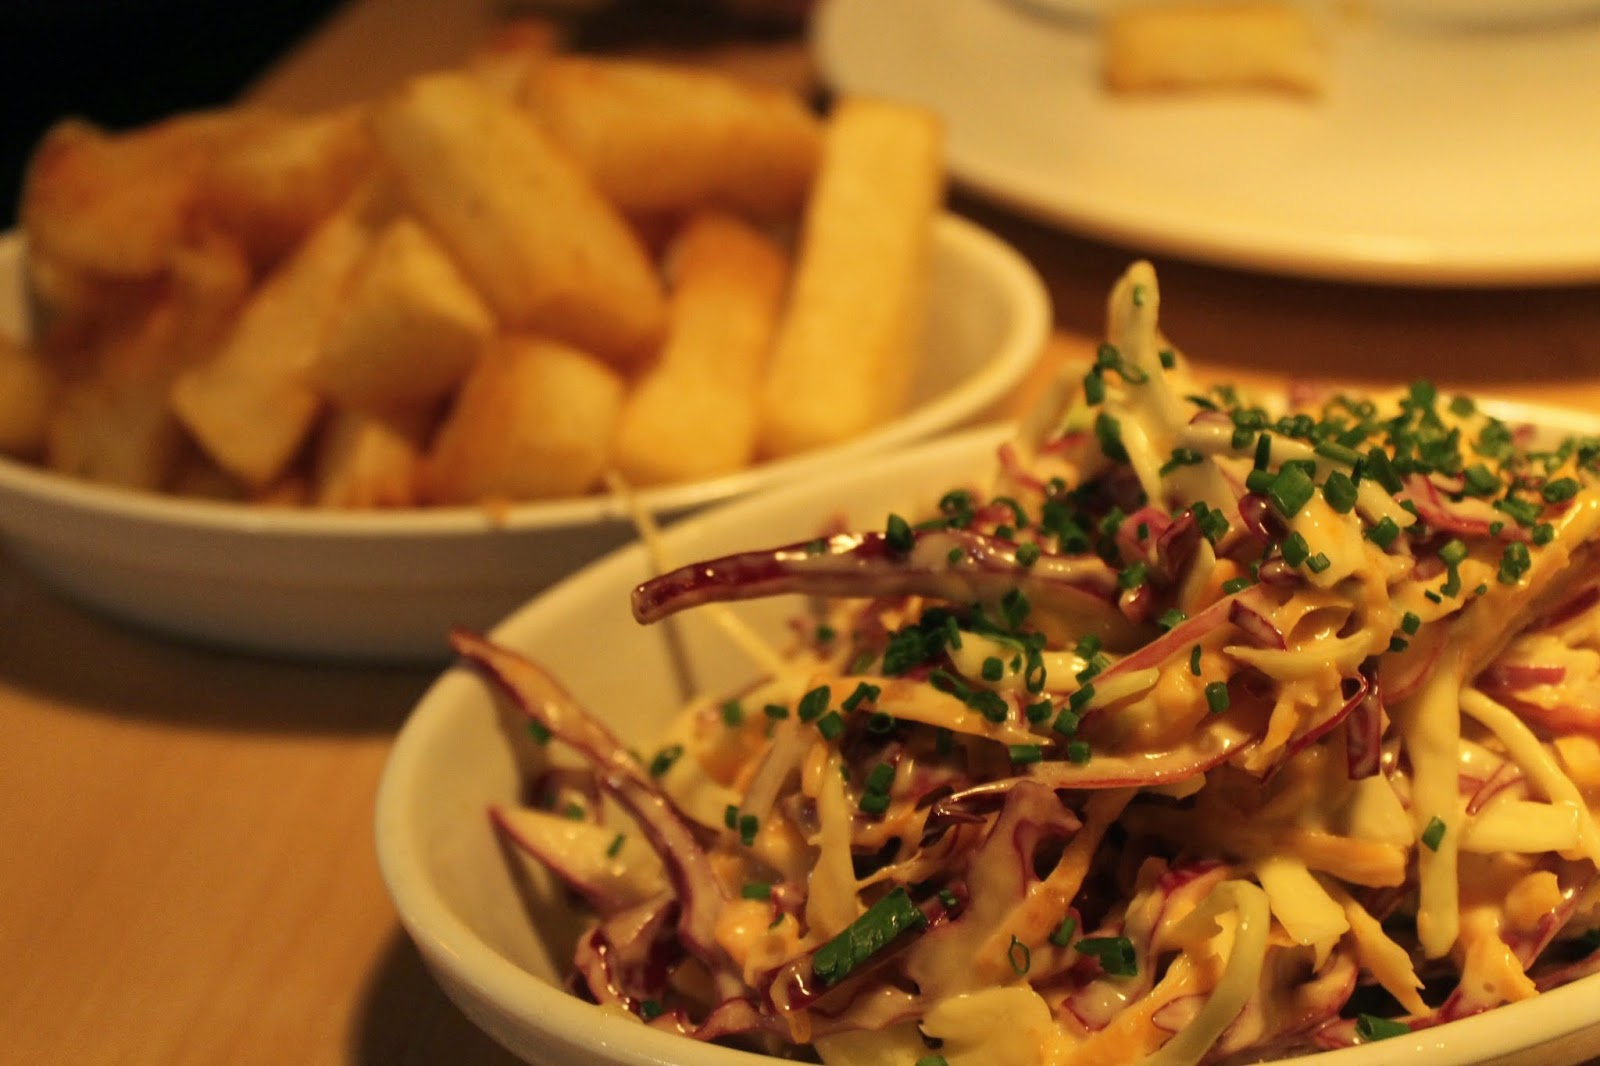 coleslaw and chips